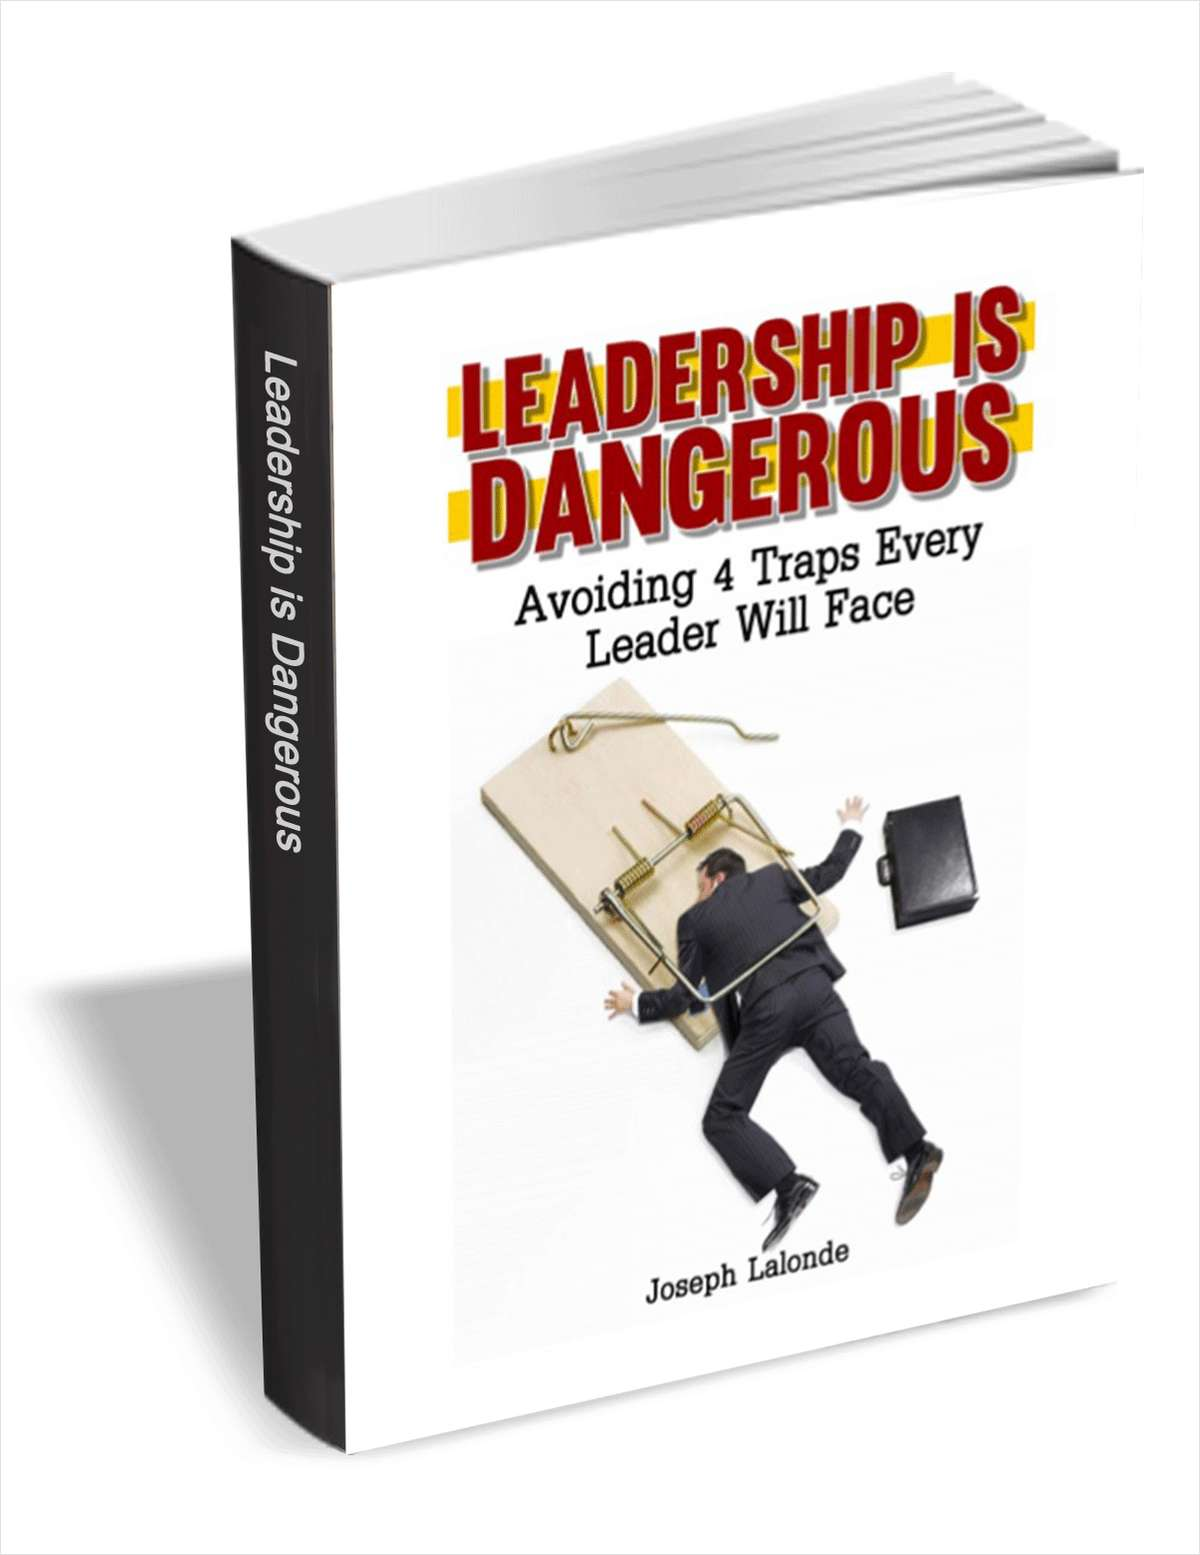 Leadership Is Dangerous - Avoiding 4 Traps Every Leader Will Face